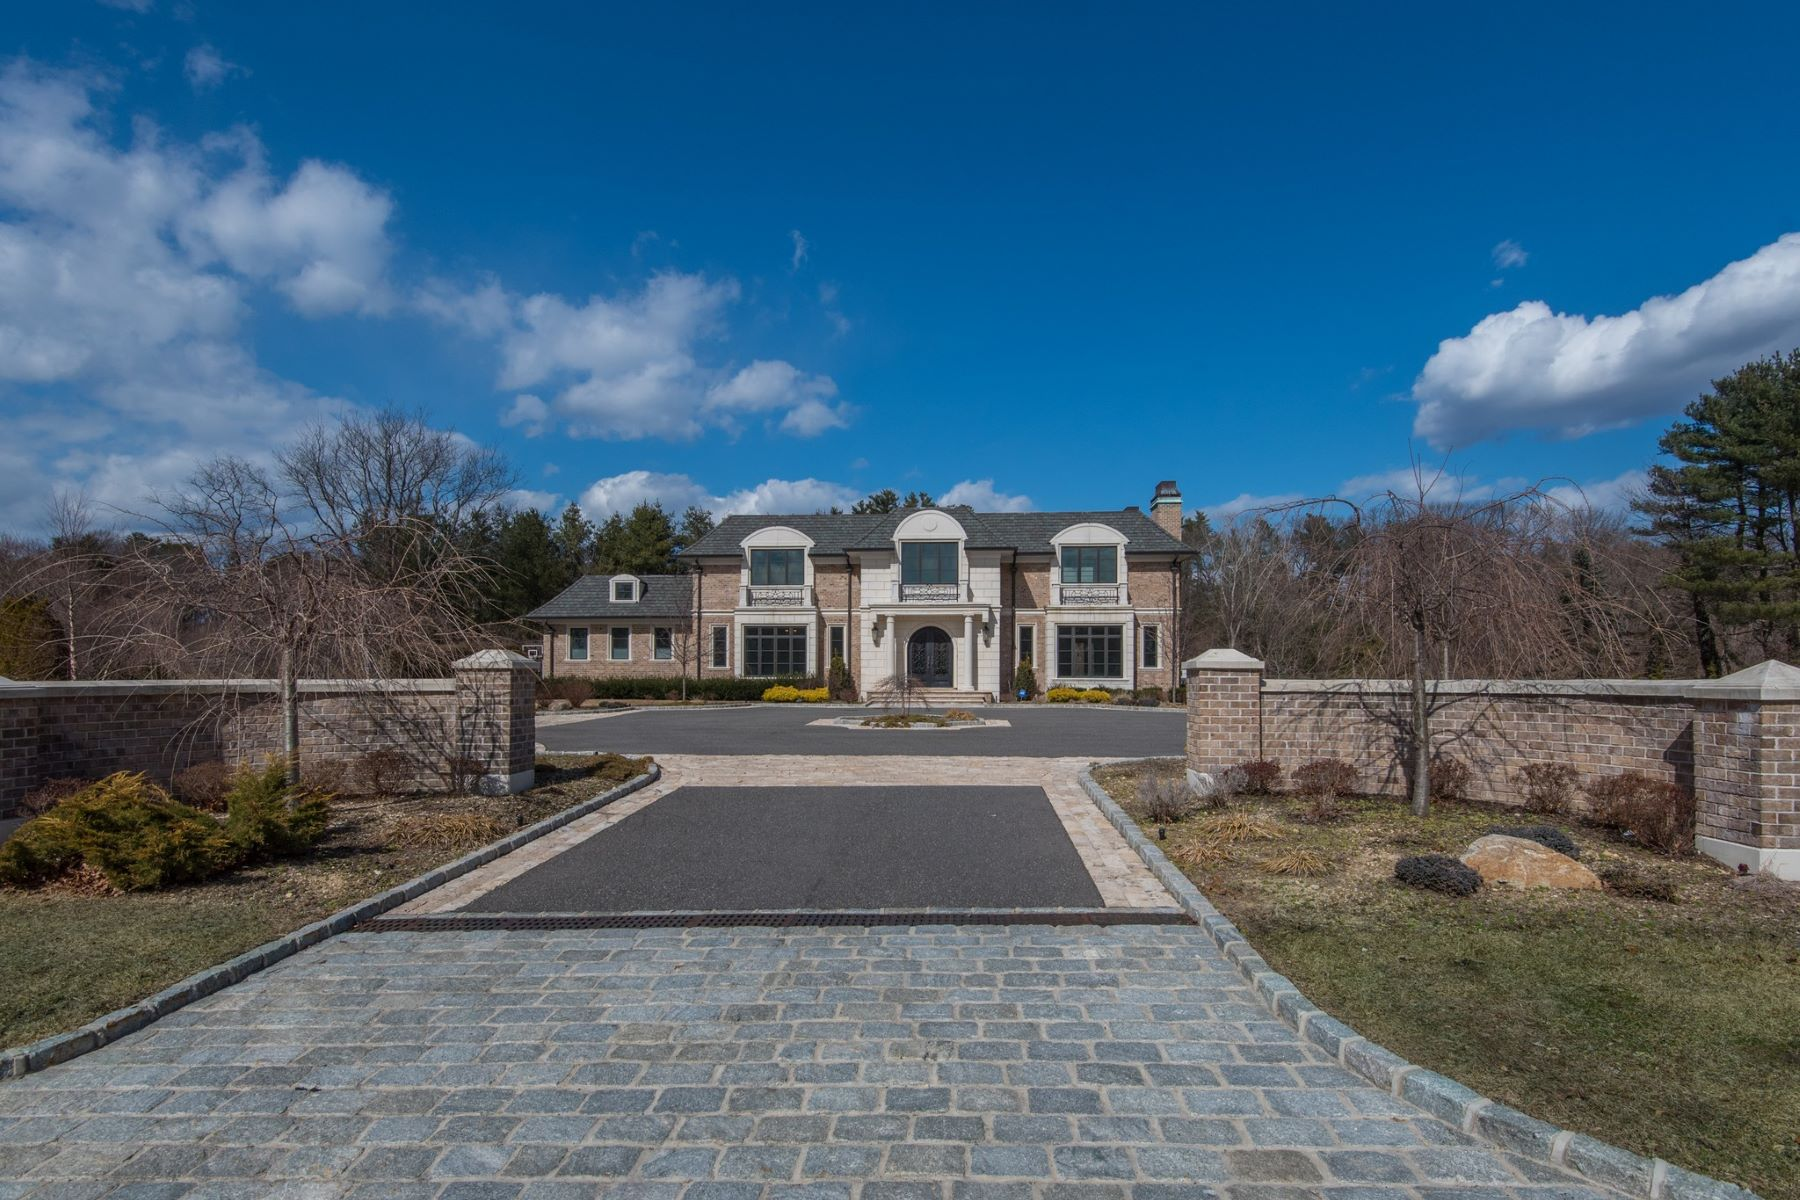 Single Family Homes for Active at Old Westbury 22 Rolling Hill Rd Old Westbury, New York 11568 United States